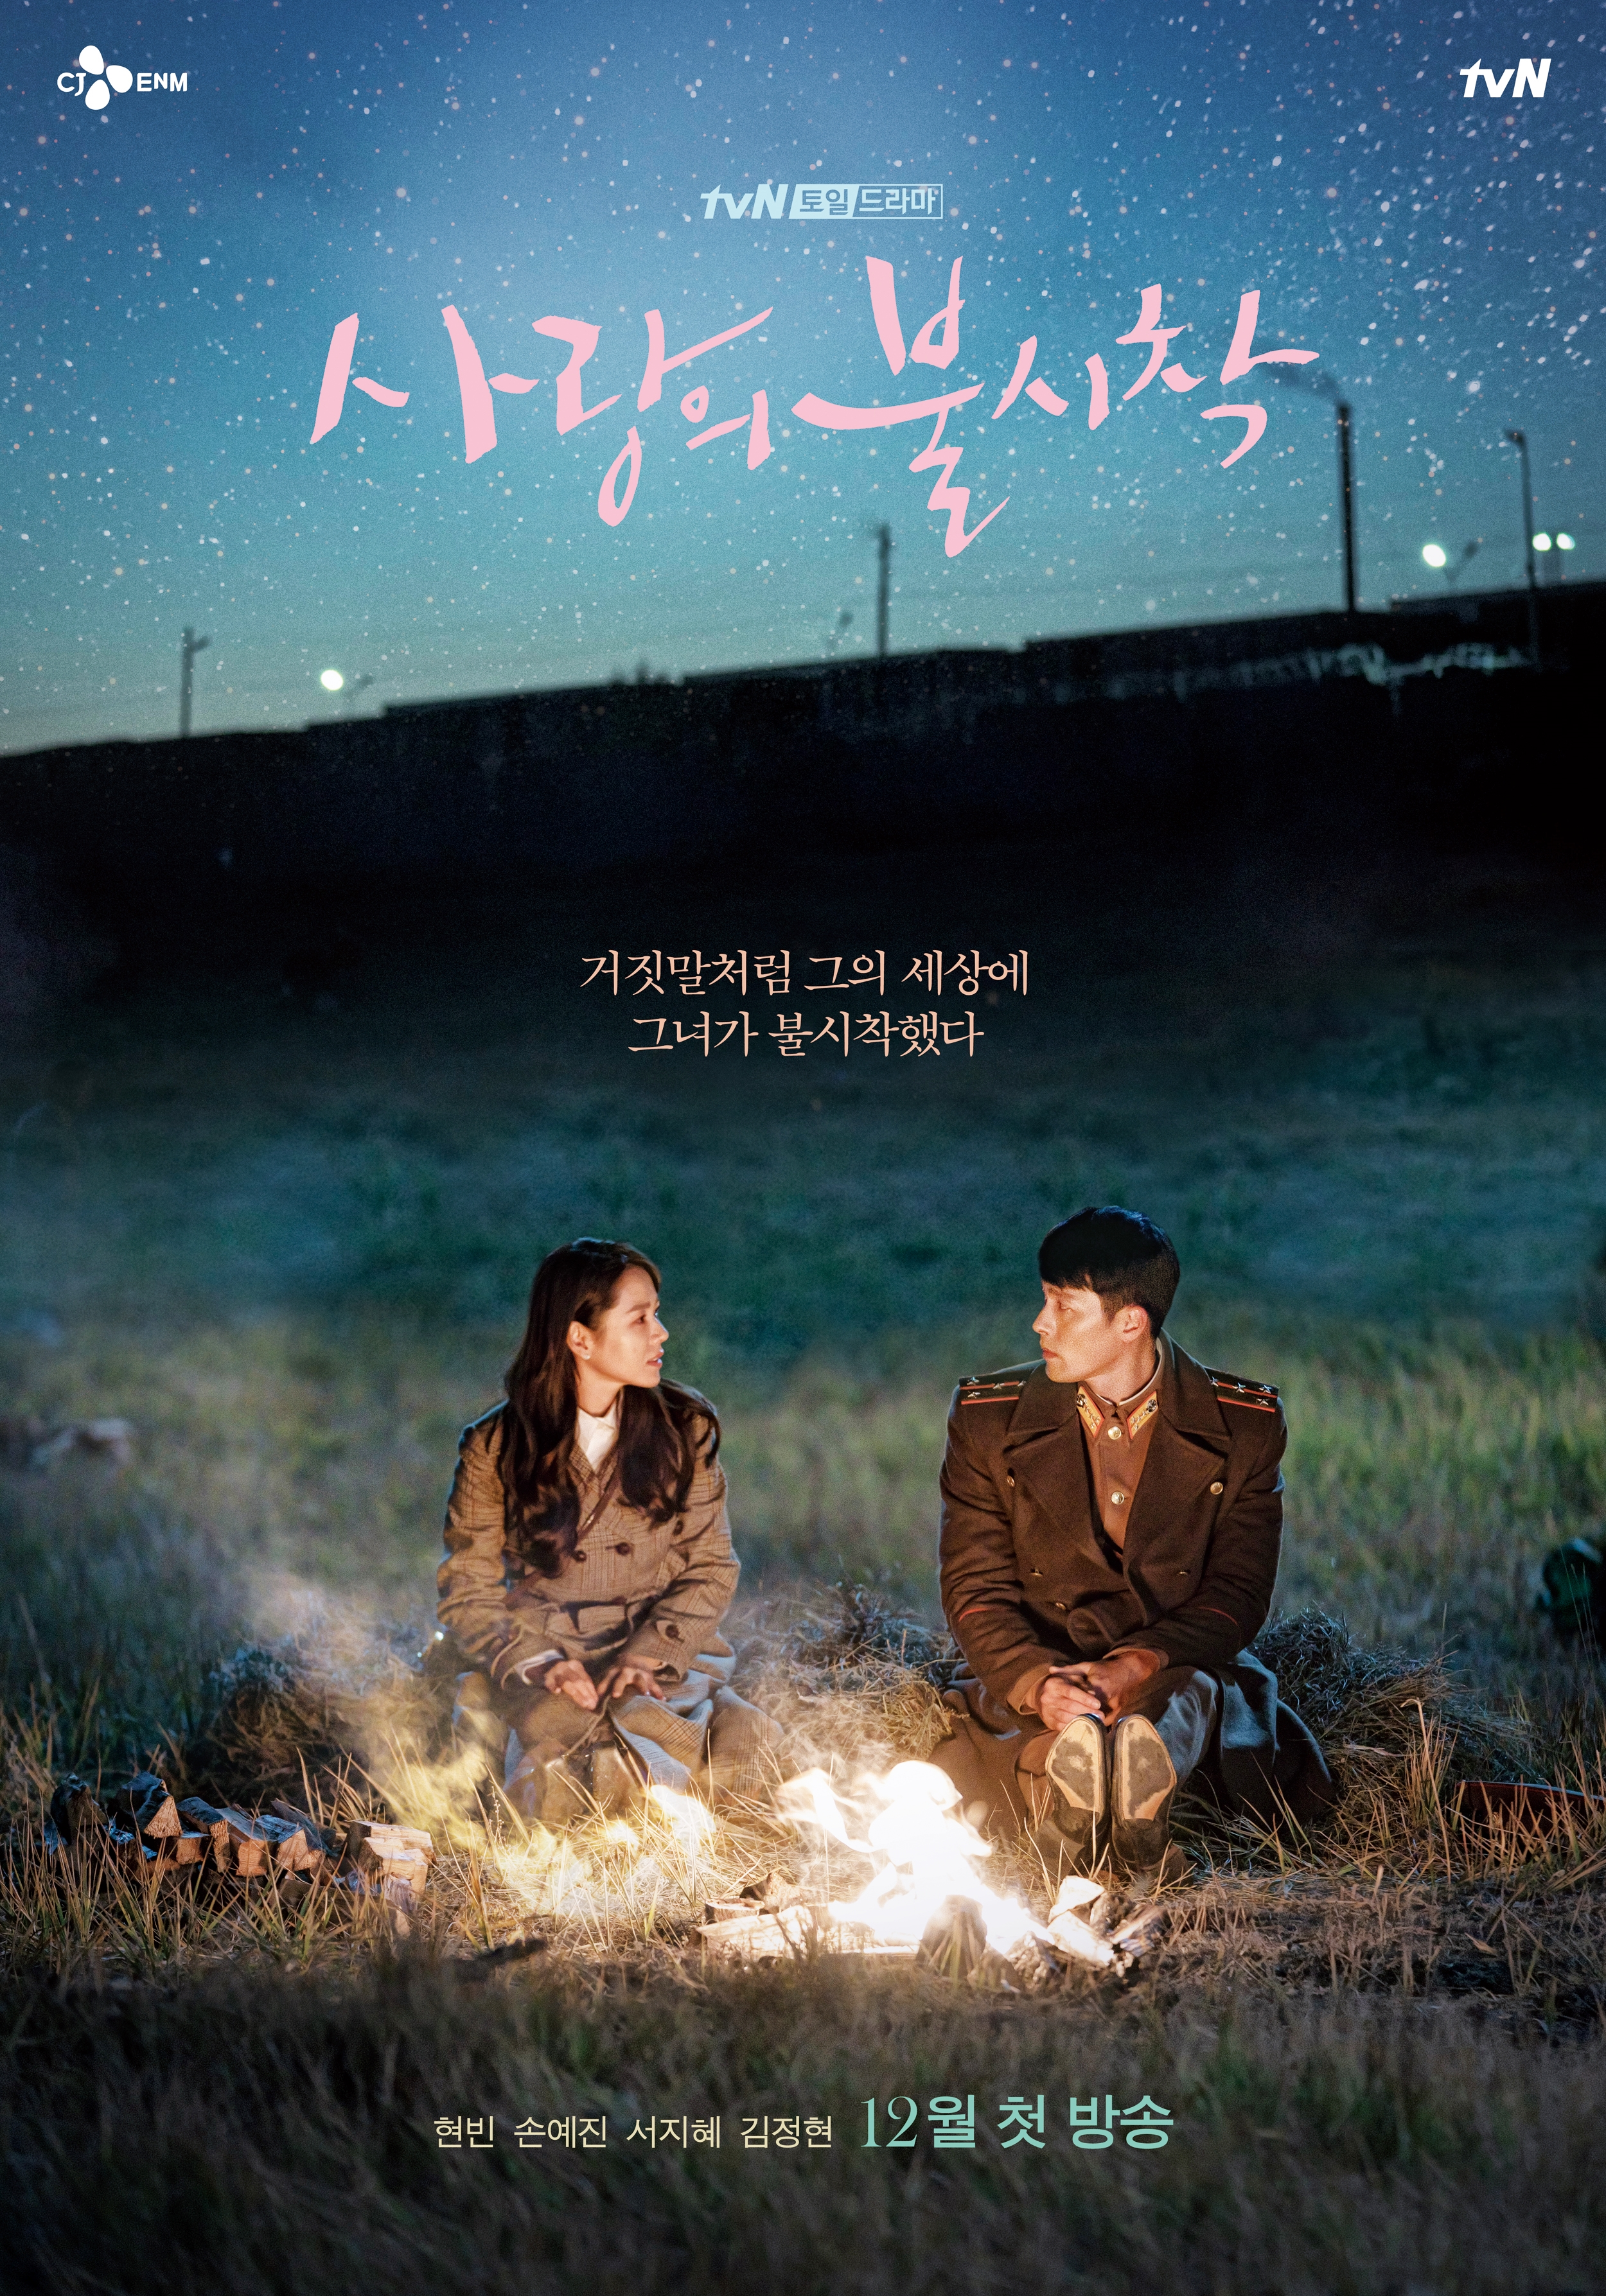 The absolute top secret love story of a chaebol heiress who made an emergency landing in North Korea because of a paragliding accident and a North Korean special officer who falls in love with her and who is hiding and protecting her.